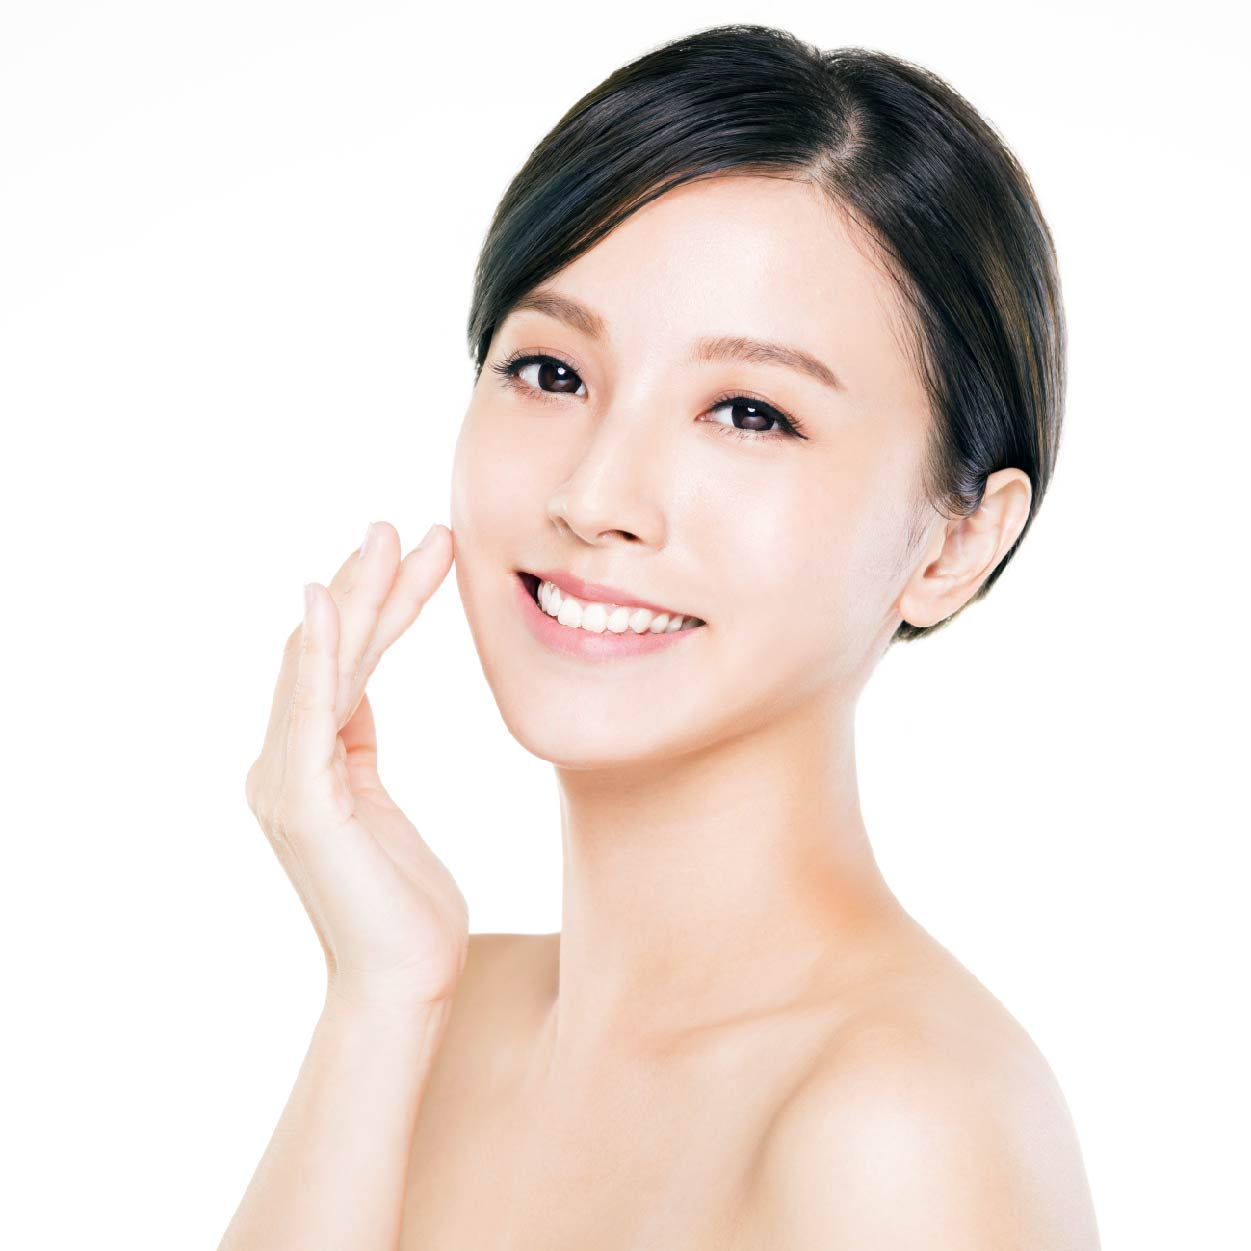 Rewards: Glow Right Treatment (worth $320)